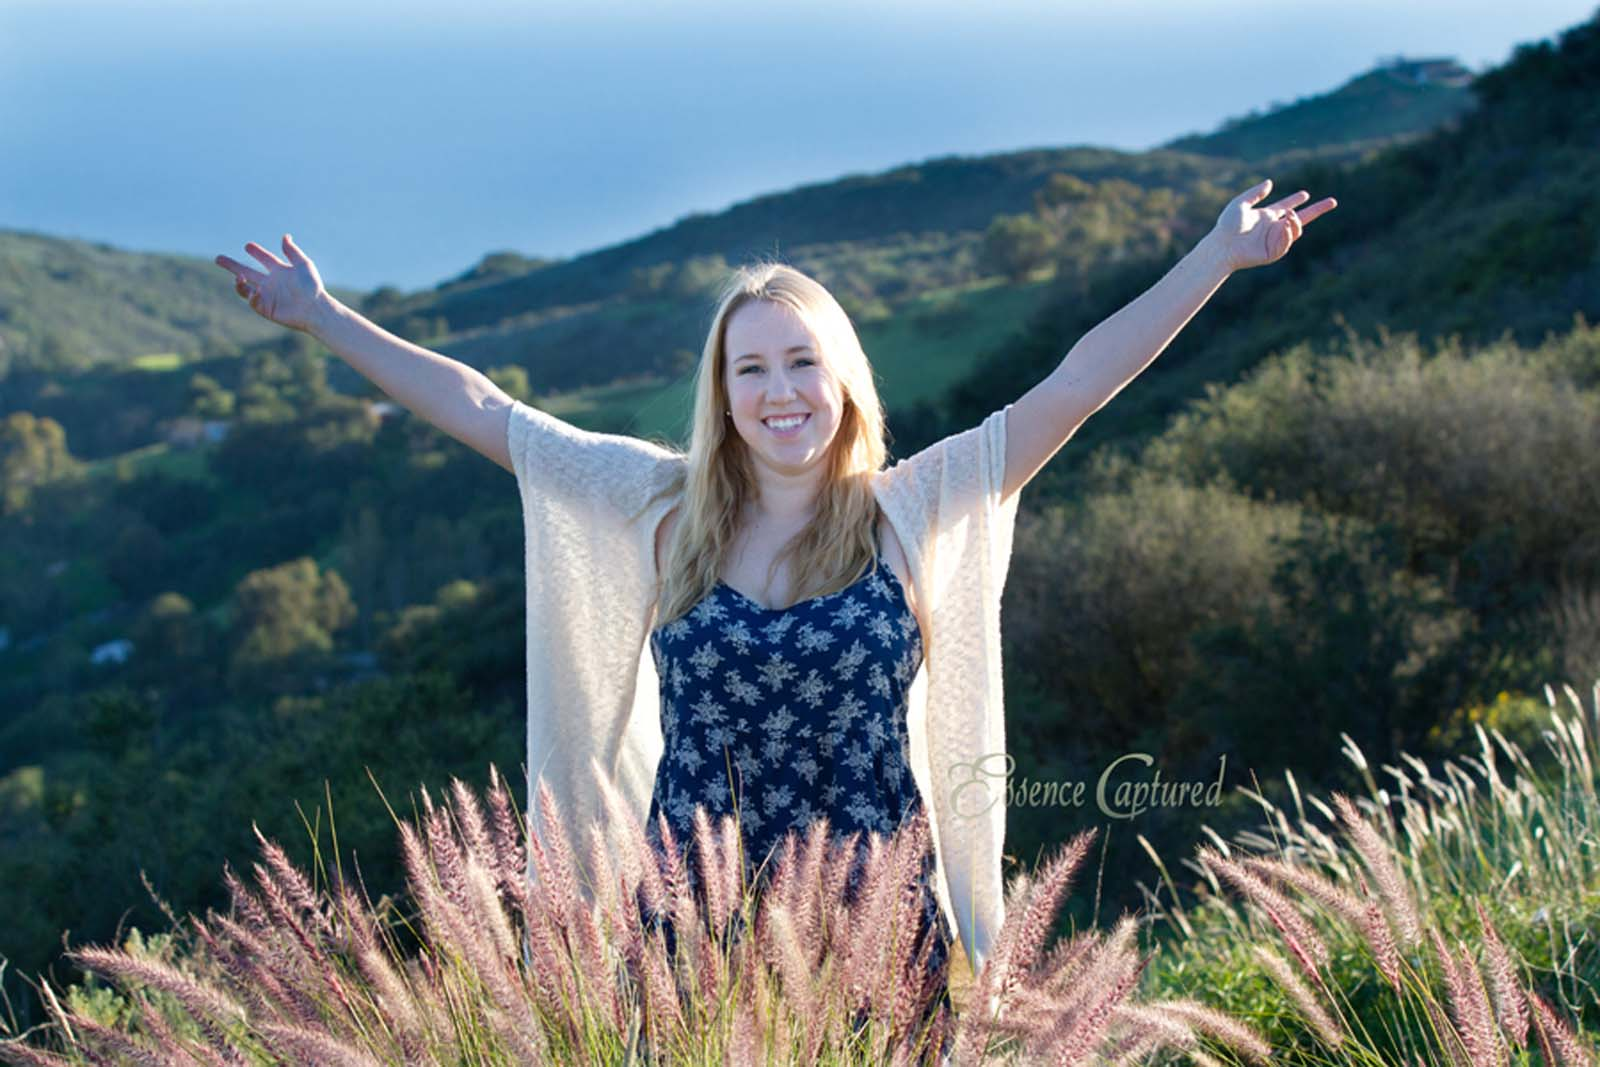 female high school senior portrait celebration top of mountain hills and ocean in background